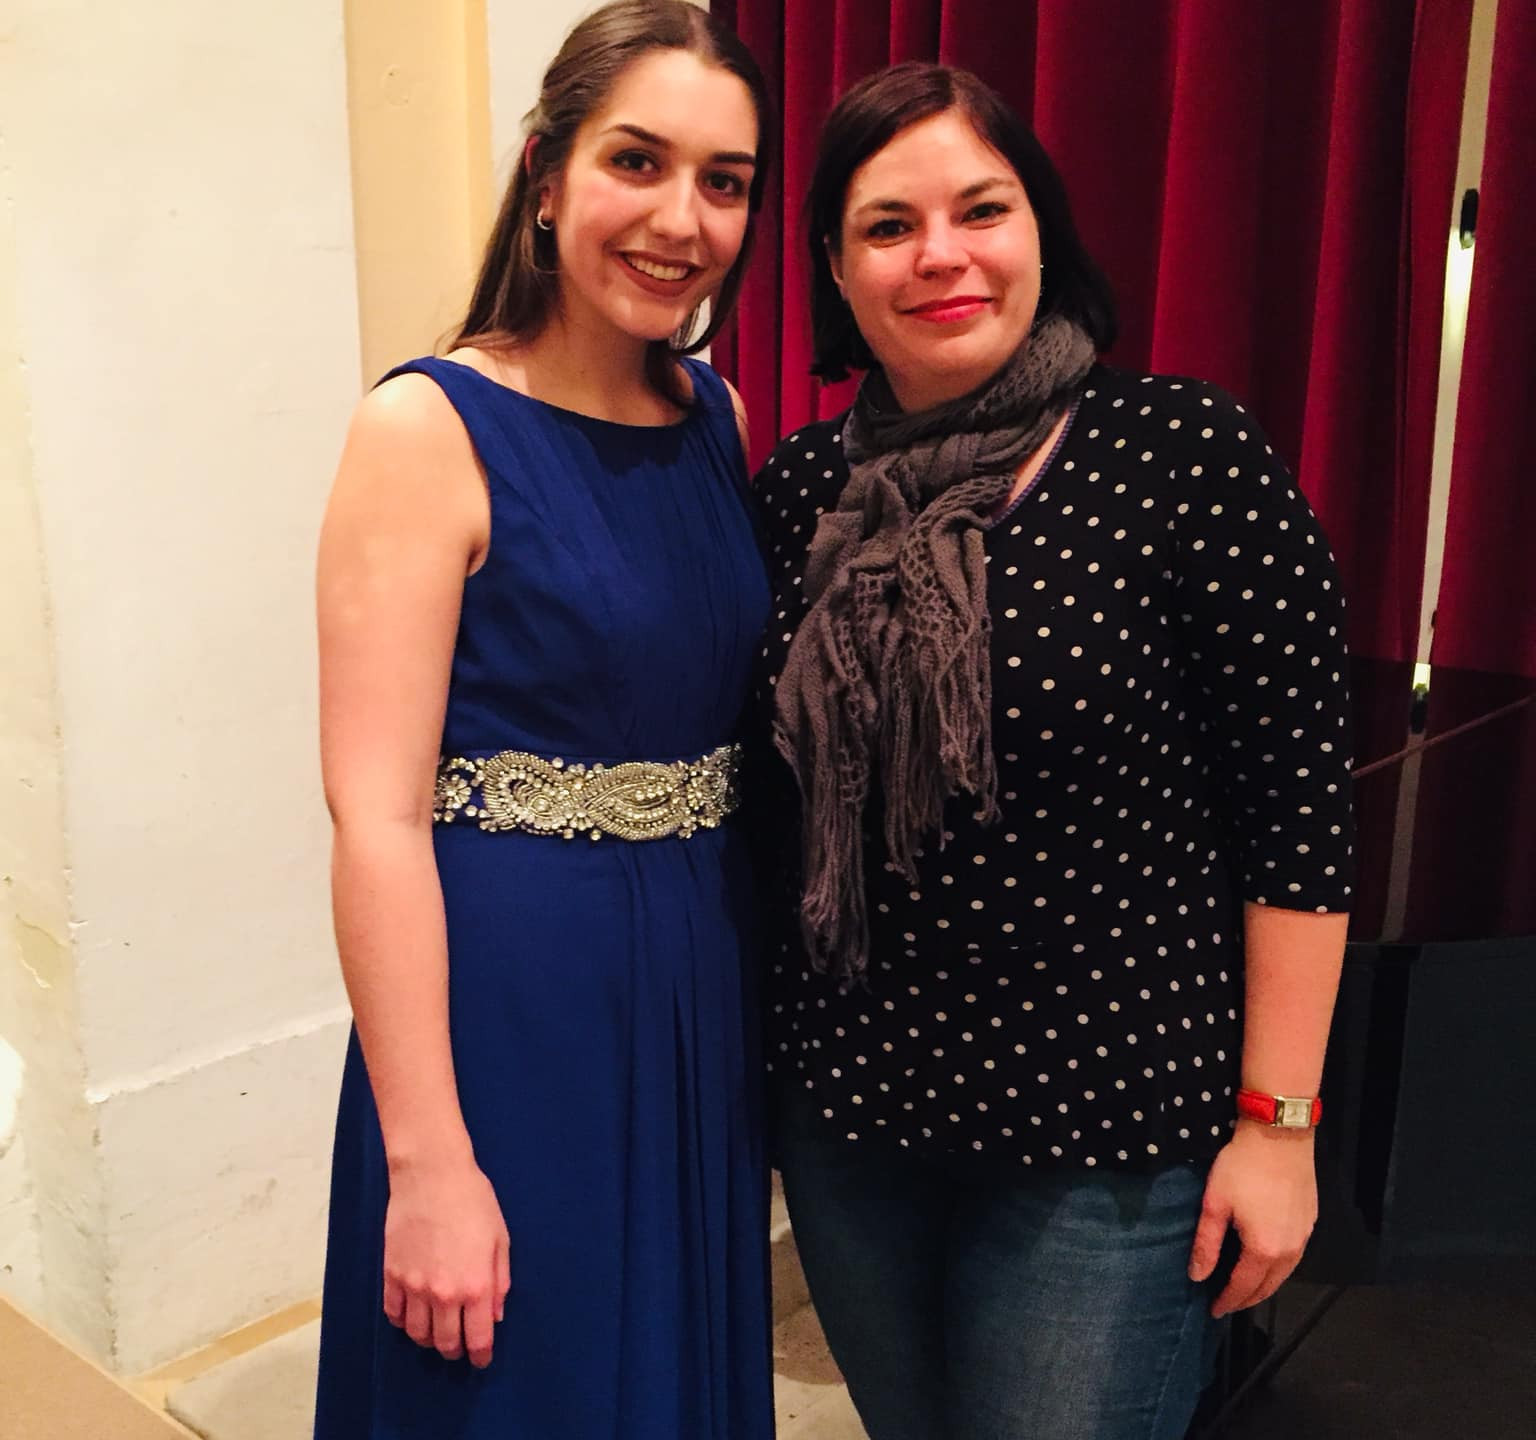 With Julia Miller, Accompanist.